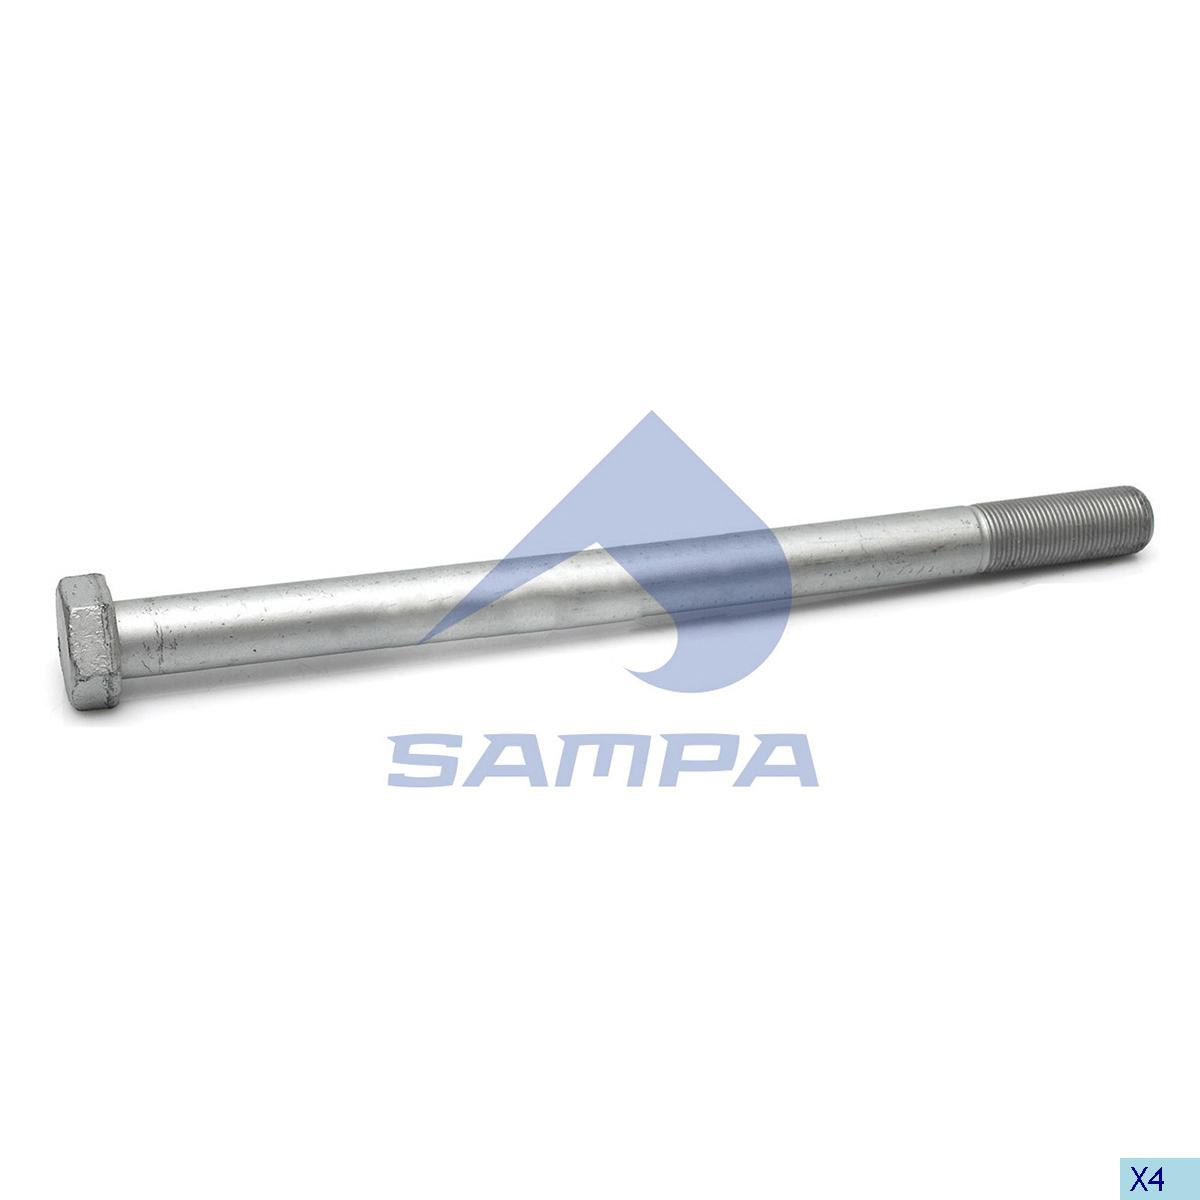 Screw, Axle Rod, R.V.I., Suspension